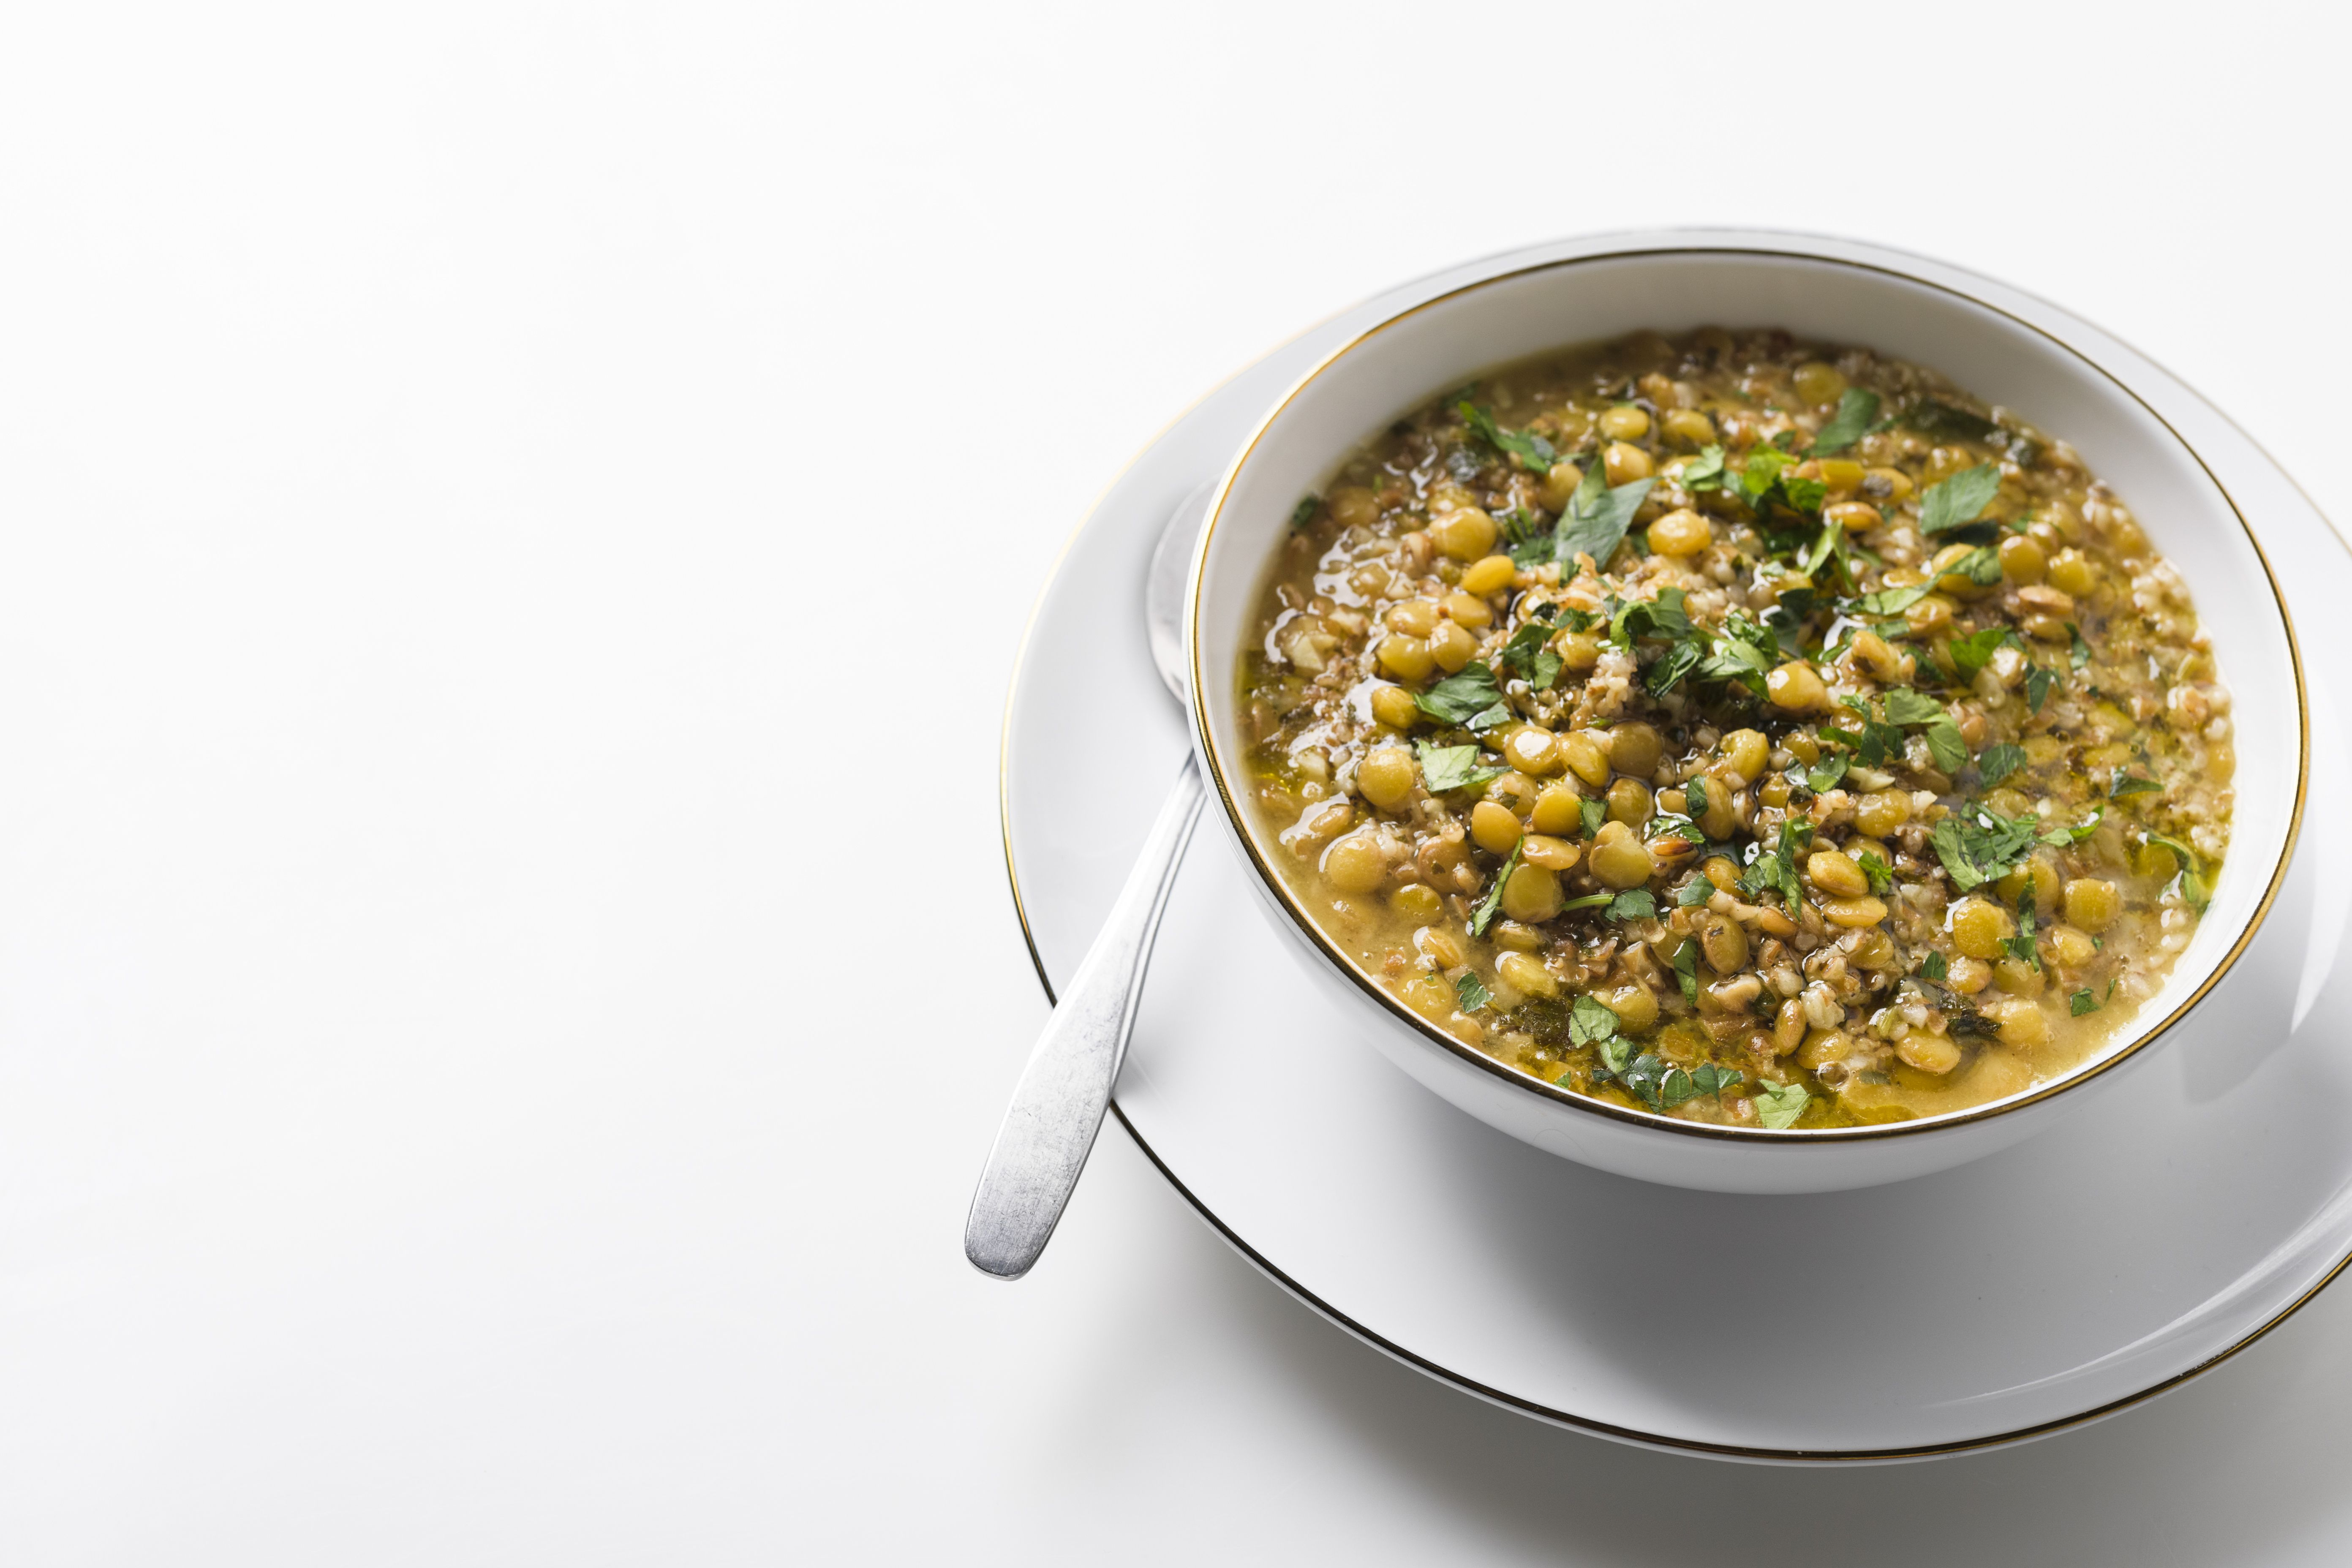 Toasted Bulgur and Lentil Soup with Garlic, Lemon and Parsley